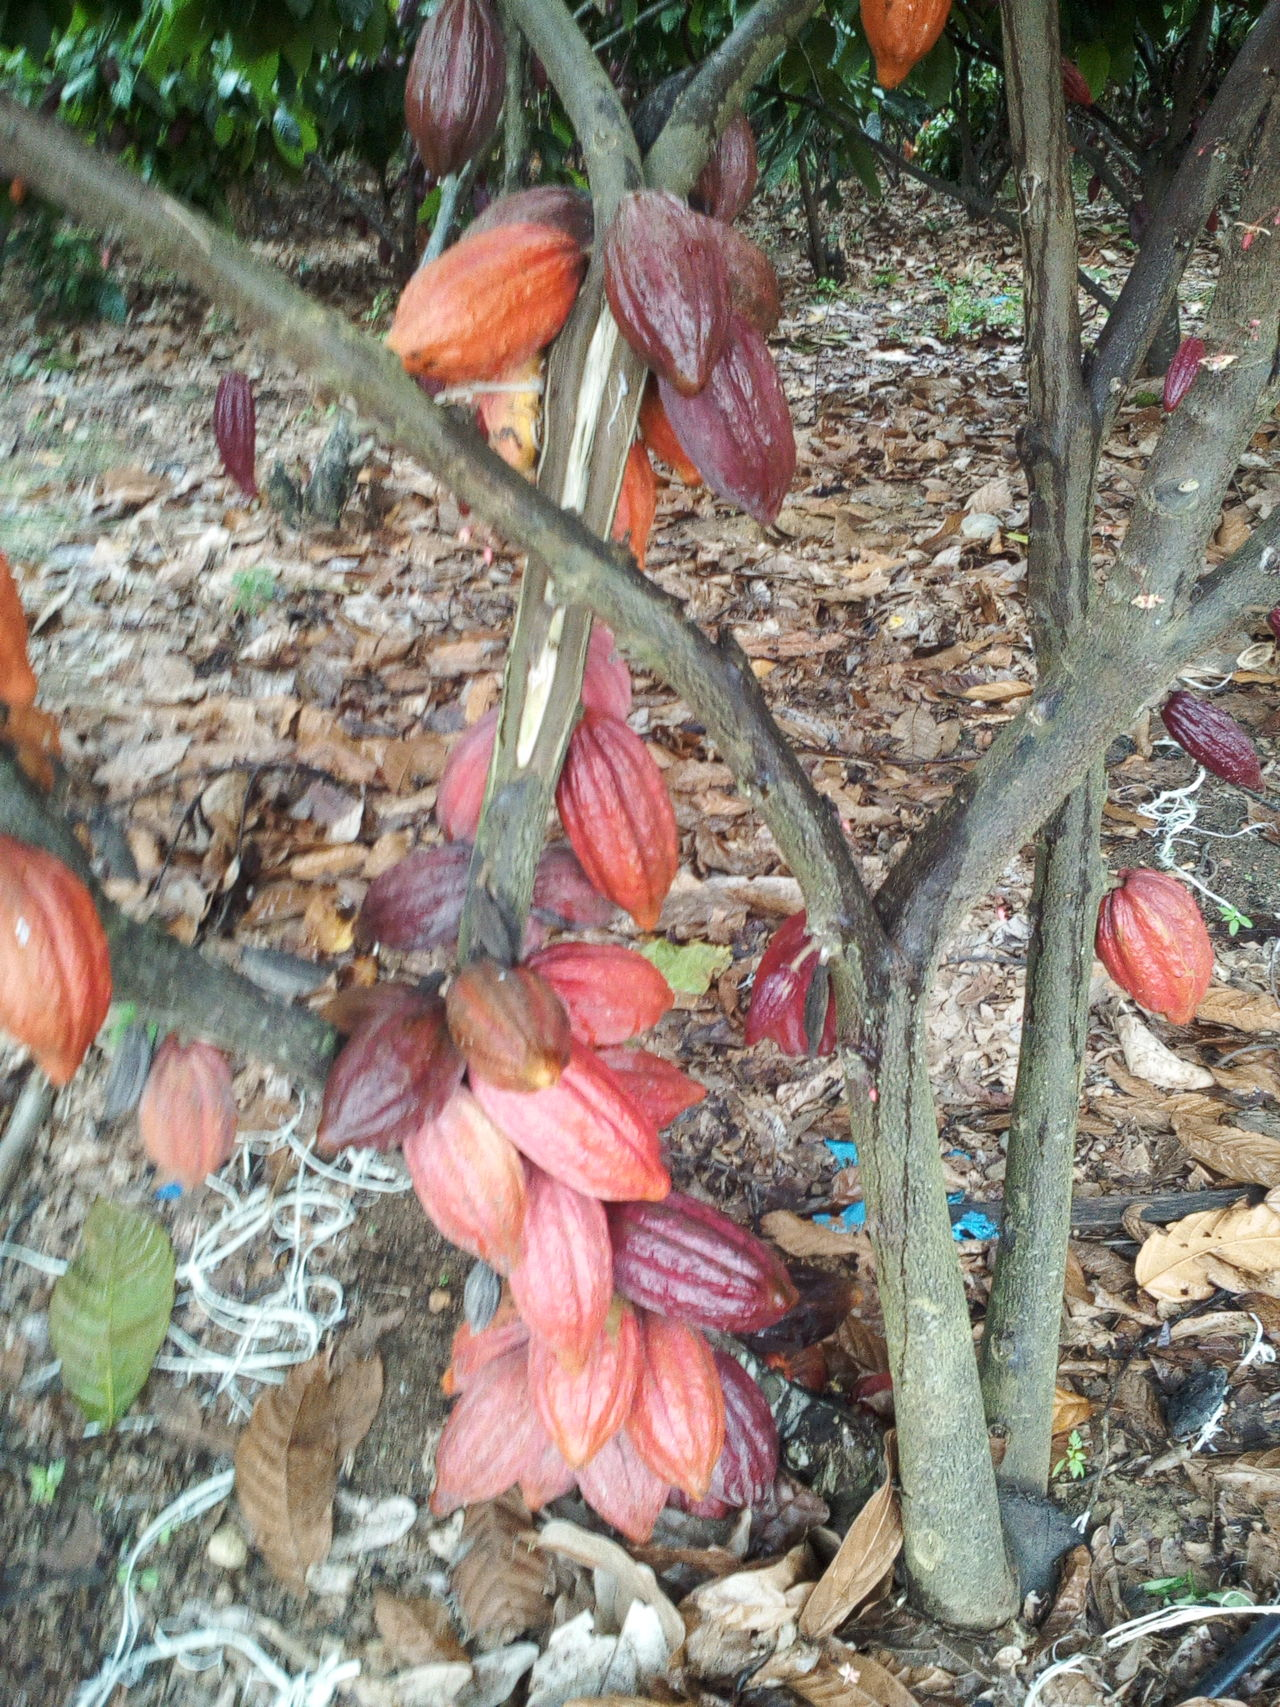 cocoa brazil Fruit Bitter Tropical Agriculture Agro Cocoa Chocolate Plant Sell Tree Export Buy Monay Nature